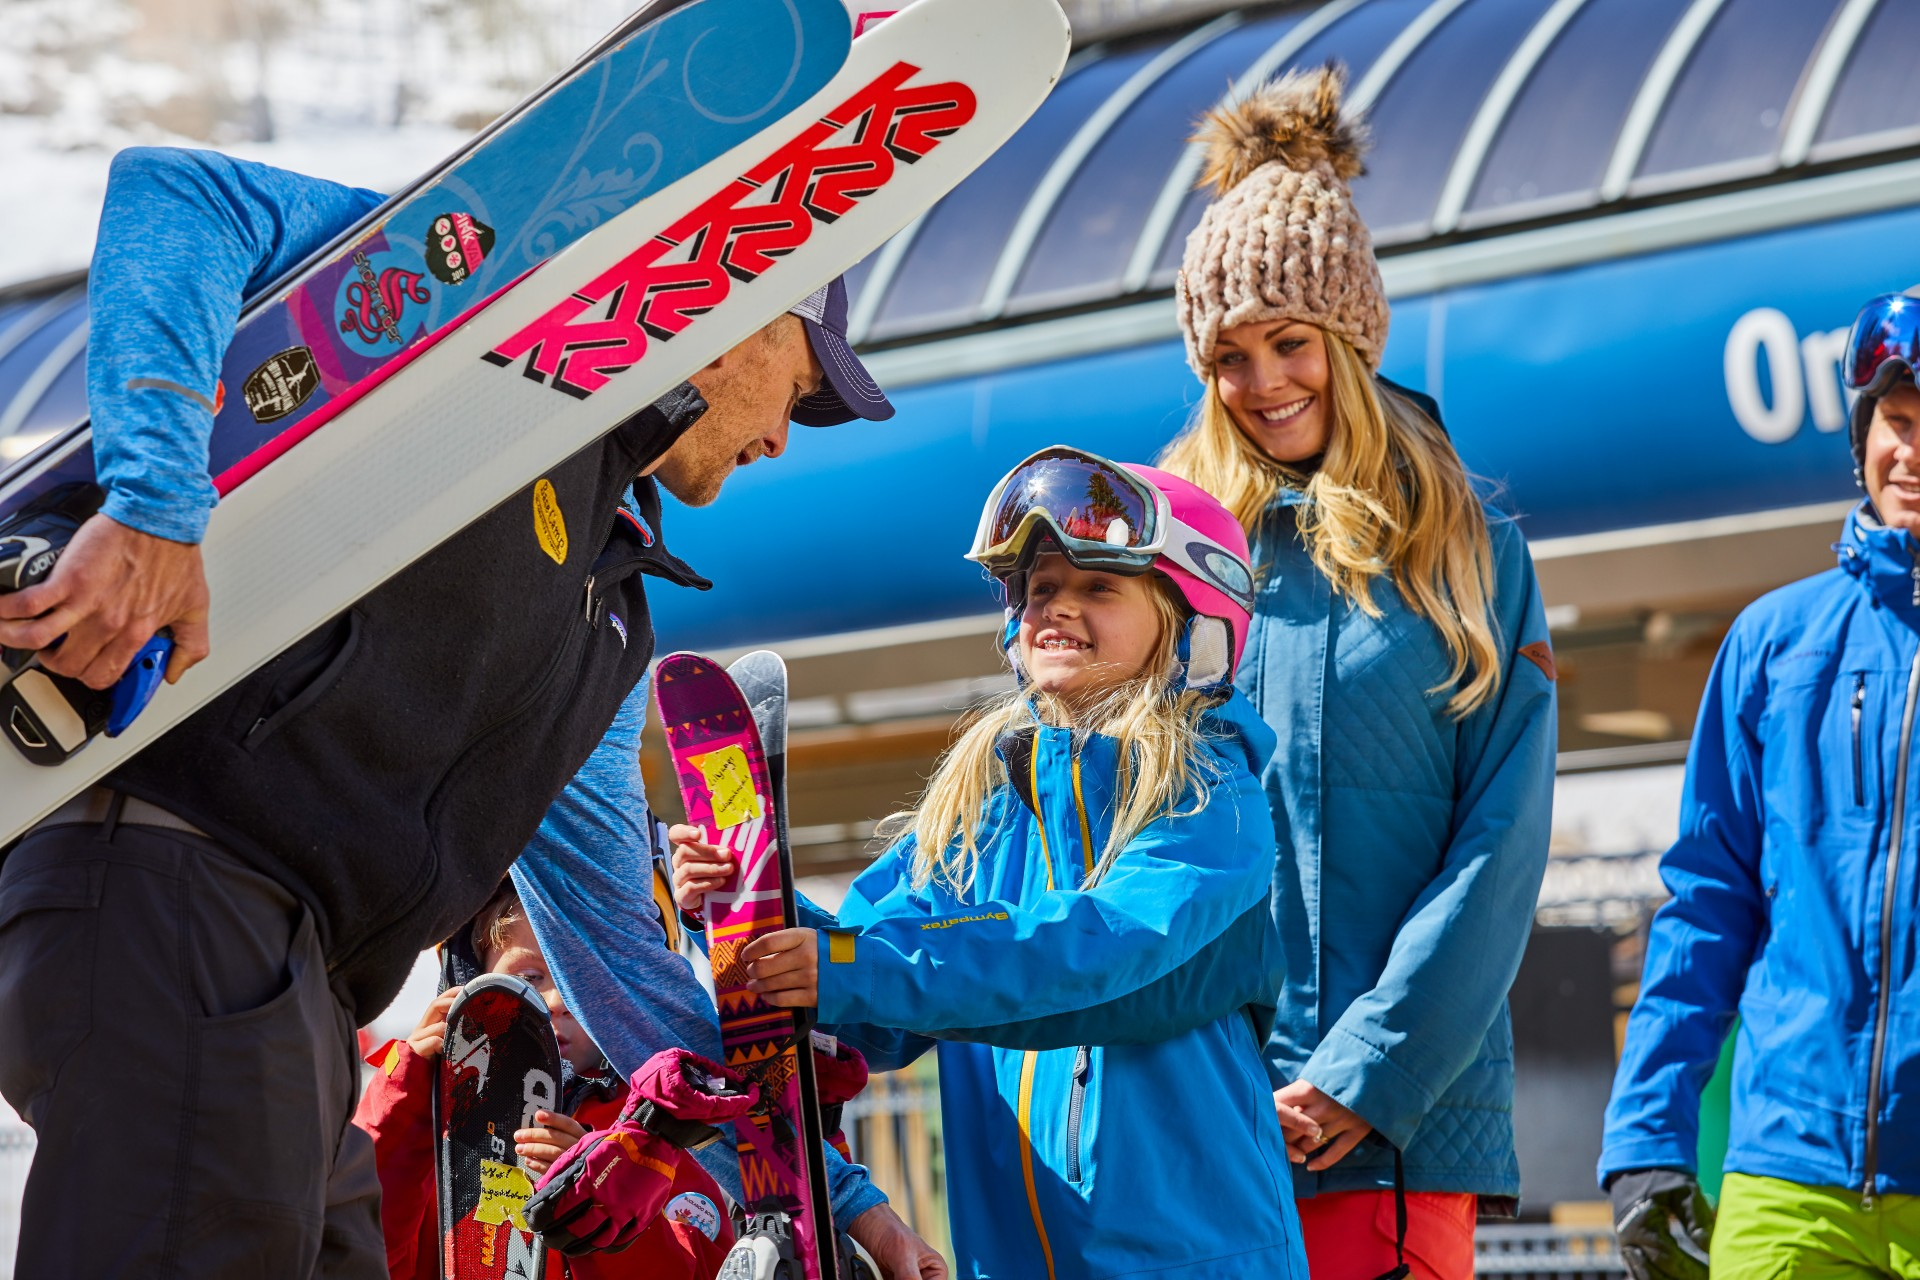 A happy family gets ready to ski Vail Mountain with the help of Base Camp ski valet.